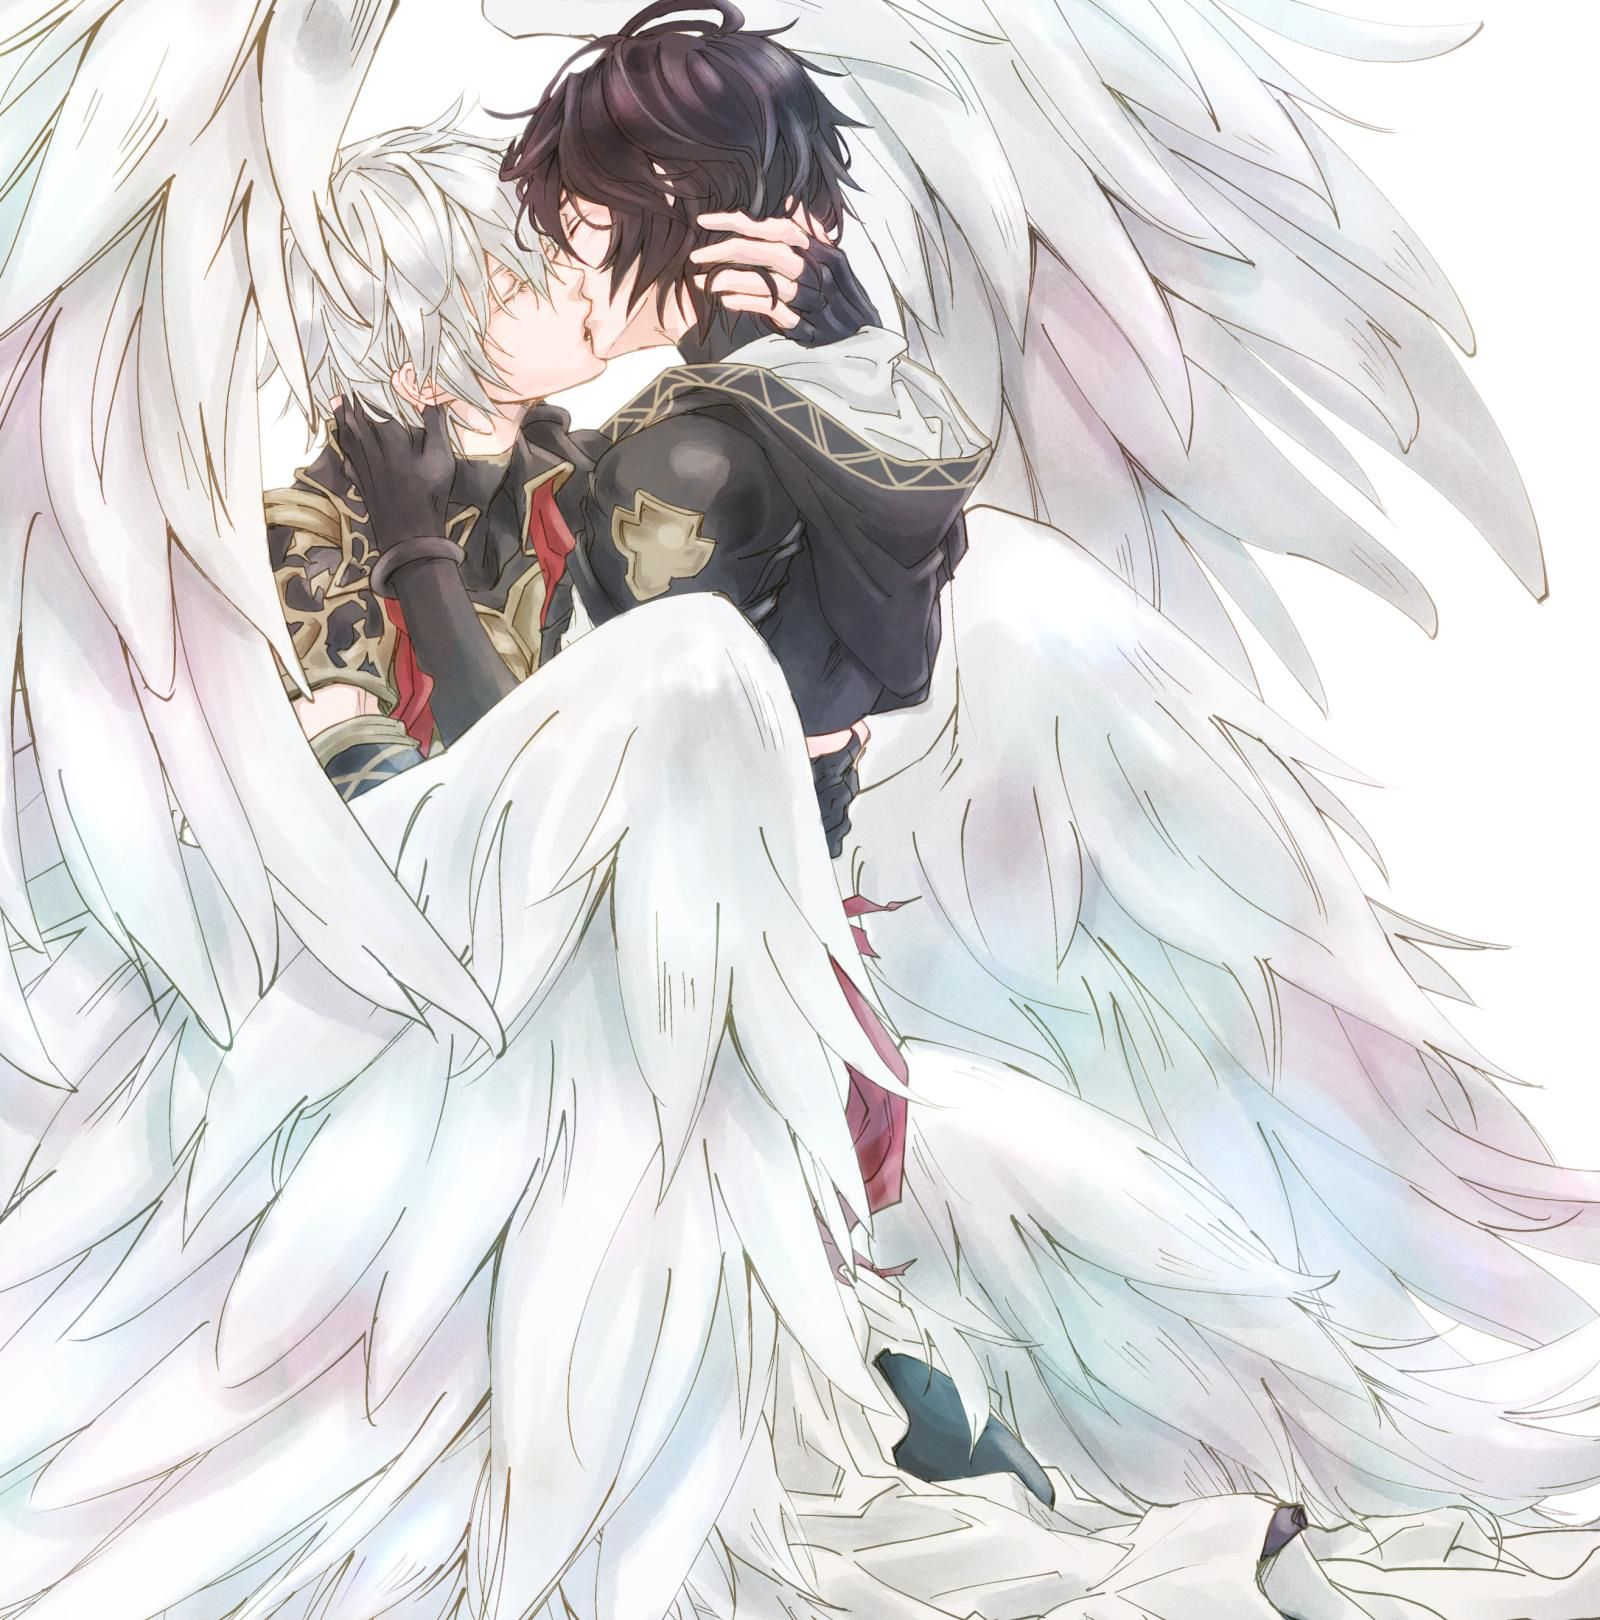 Pin by Briana Alvarado on Dan | Anime angel, Demon art ...